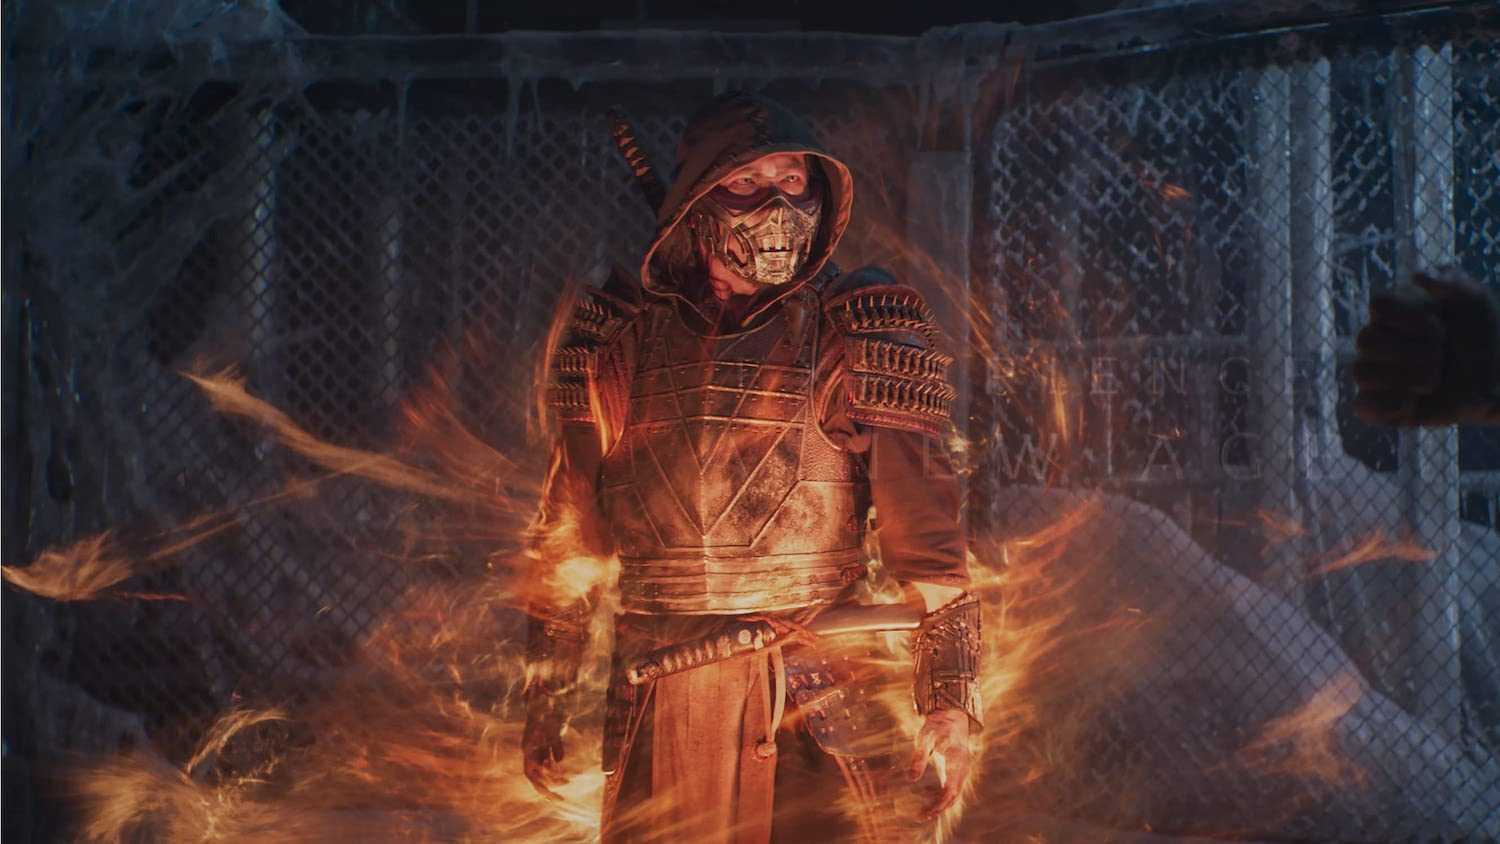 Mortal Kombat Review: Video Game Movie Redefines Classic '90s Series